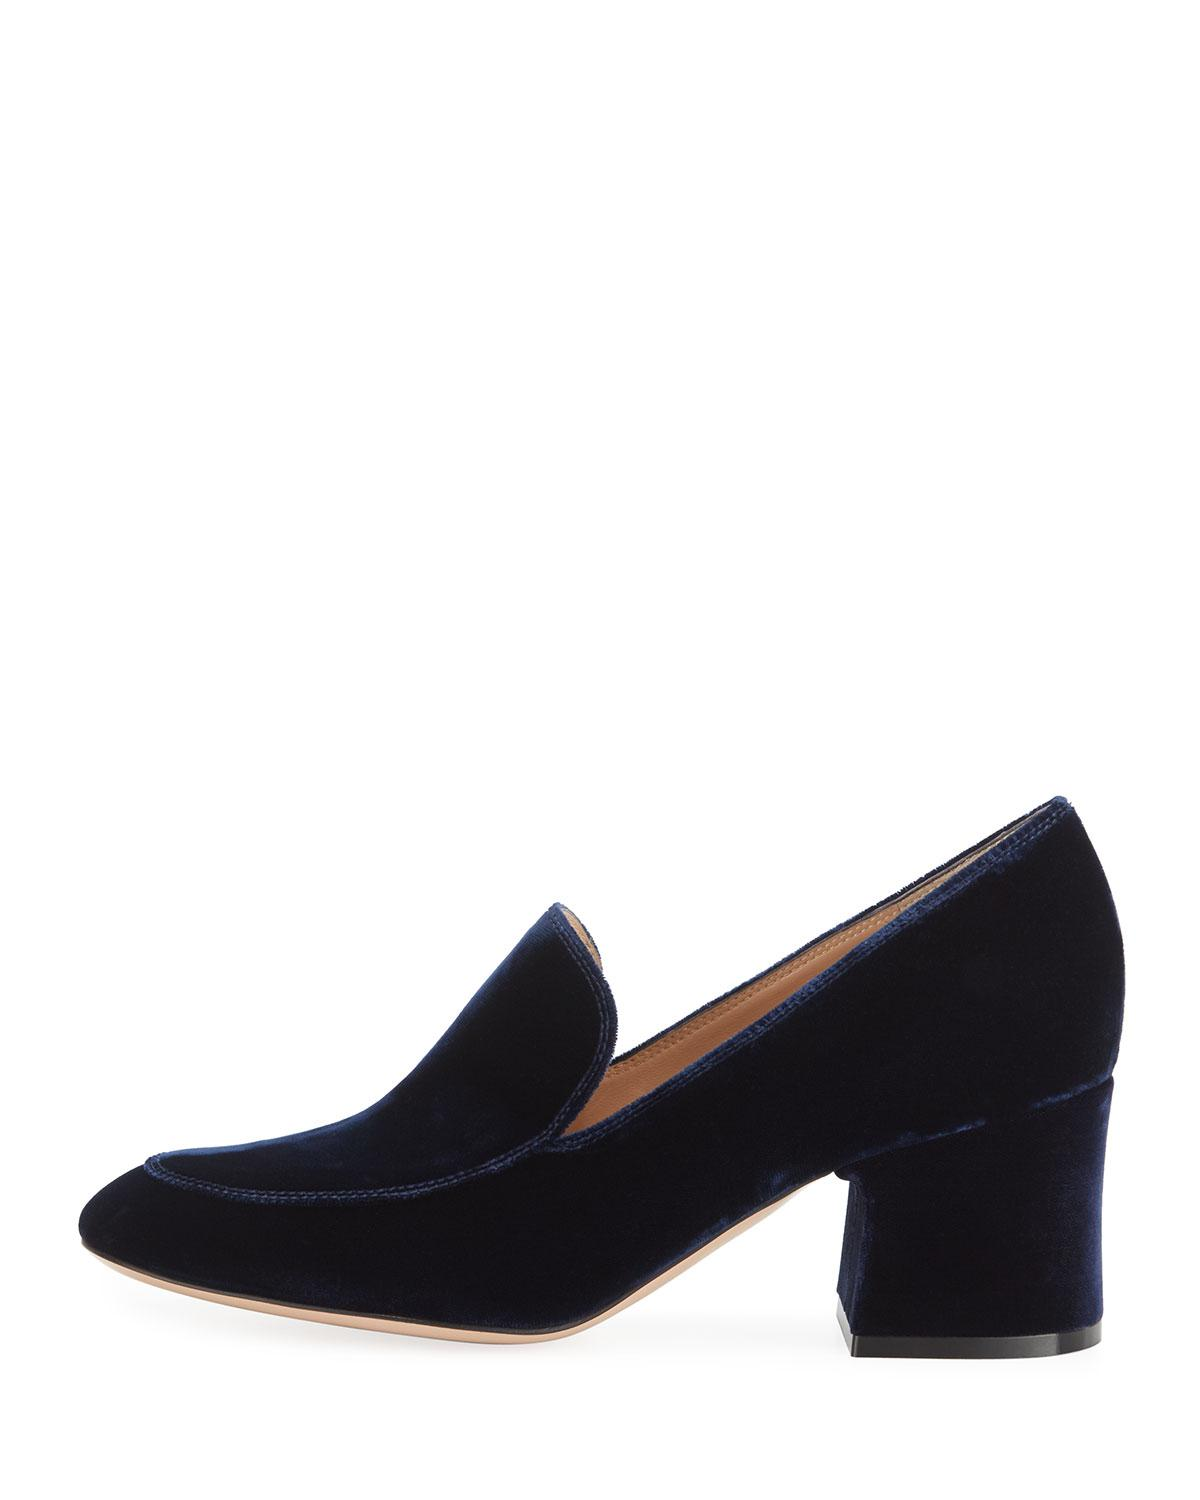 Gianvito Rossi Leather loafer pumps Wwmymi